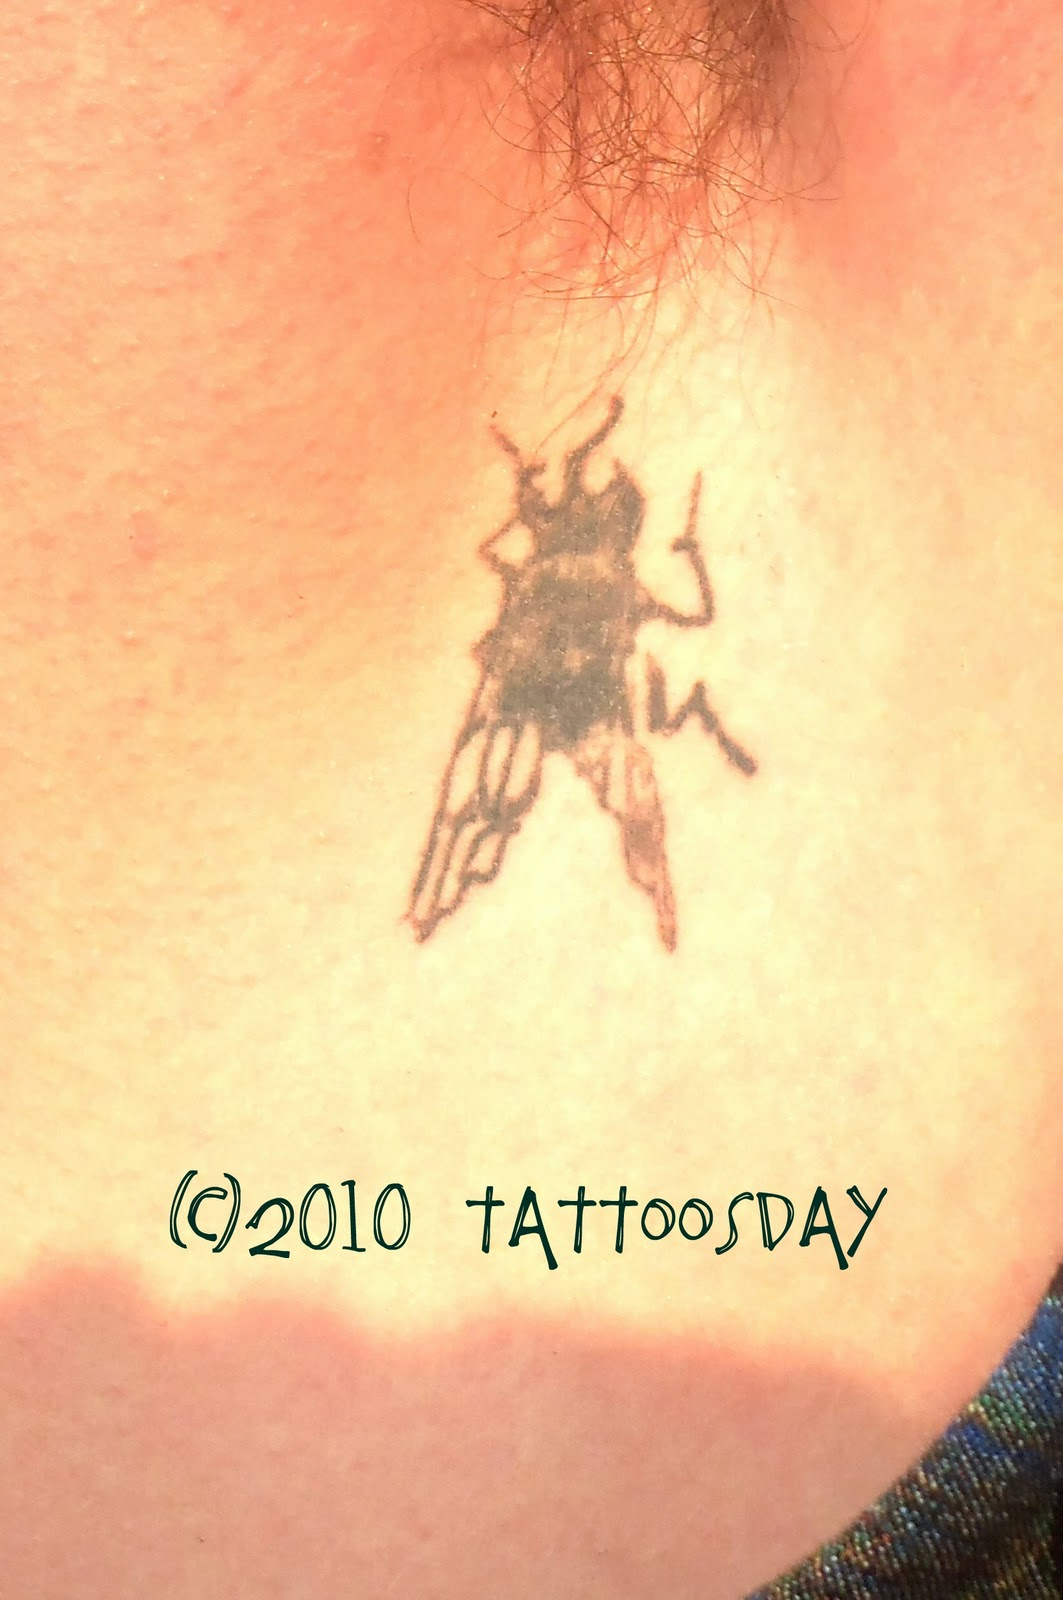 House Fly Tattoo